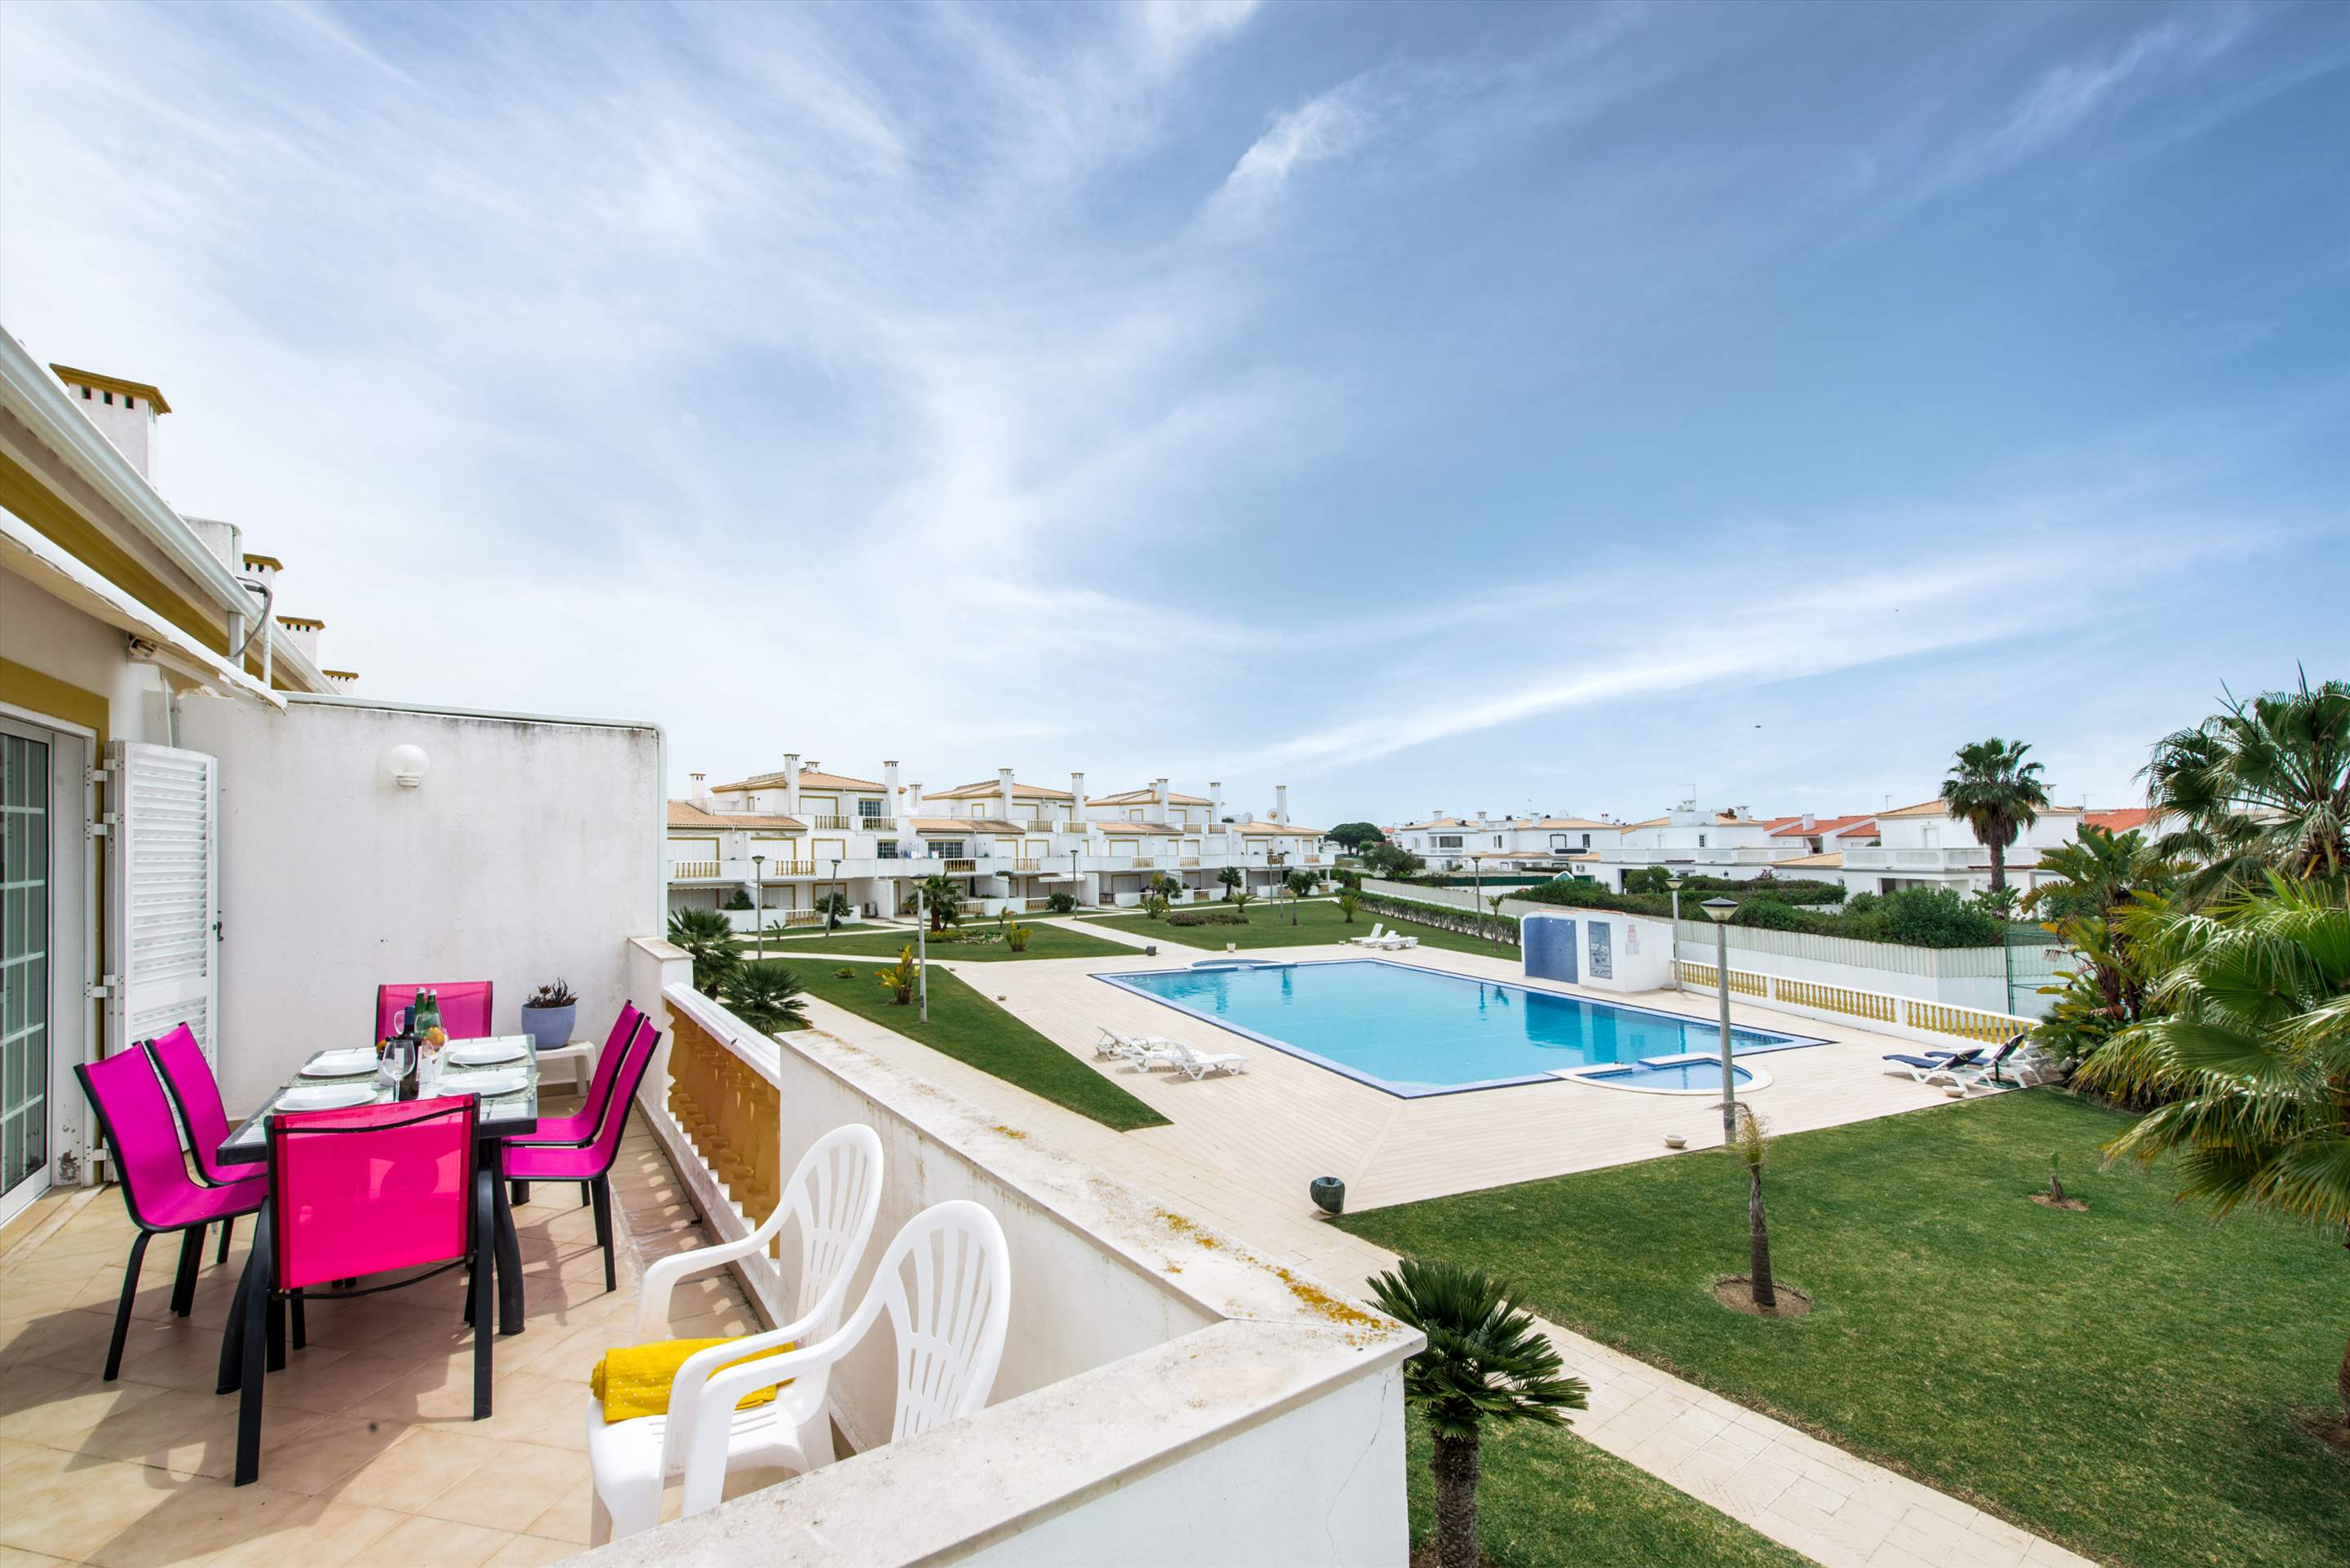 Apt O Monte, Up to 6 Persons, 3 bedroom apartment in Gale, Vale da Parra and Guia, Algarve Photo #13